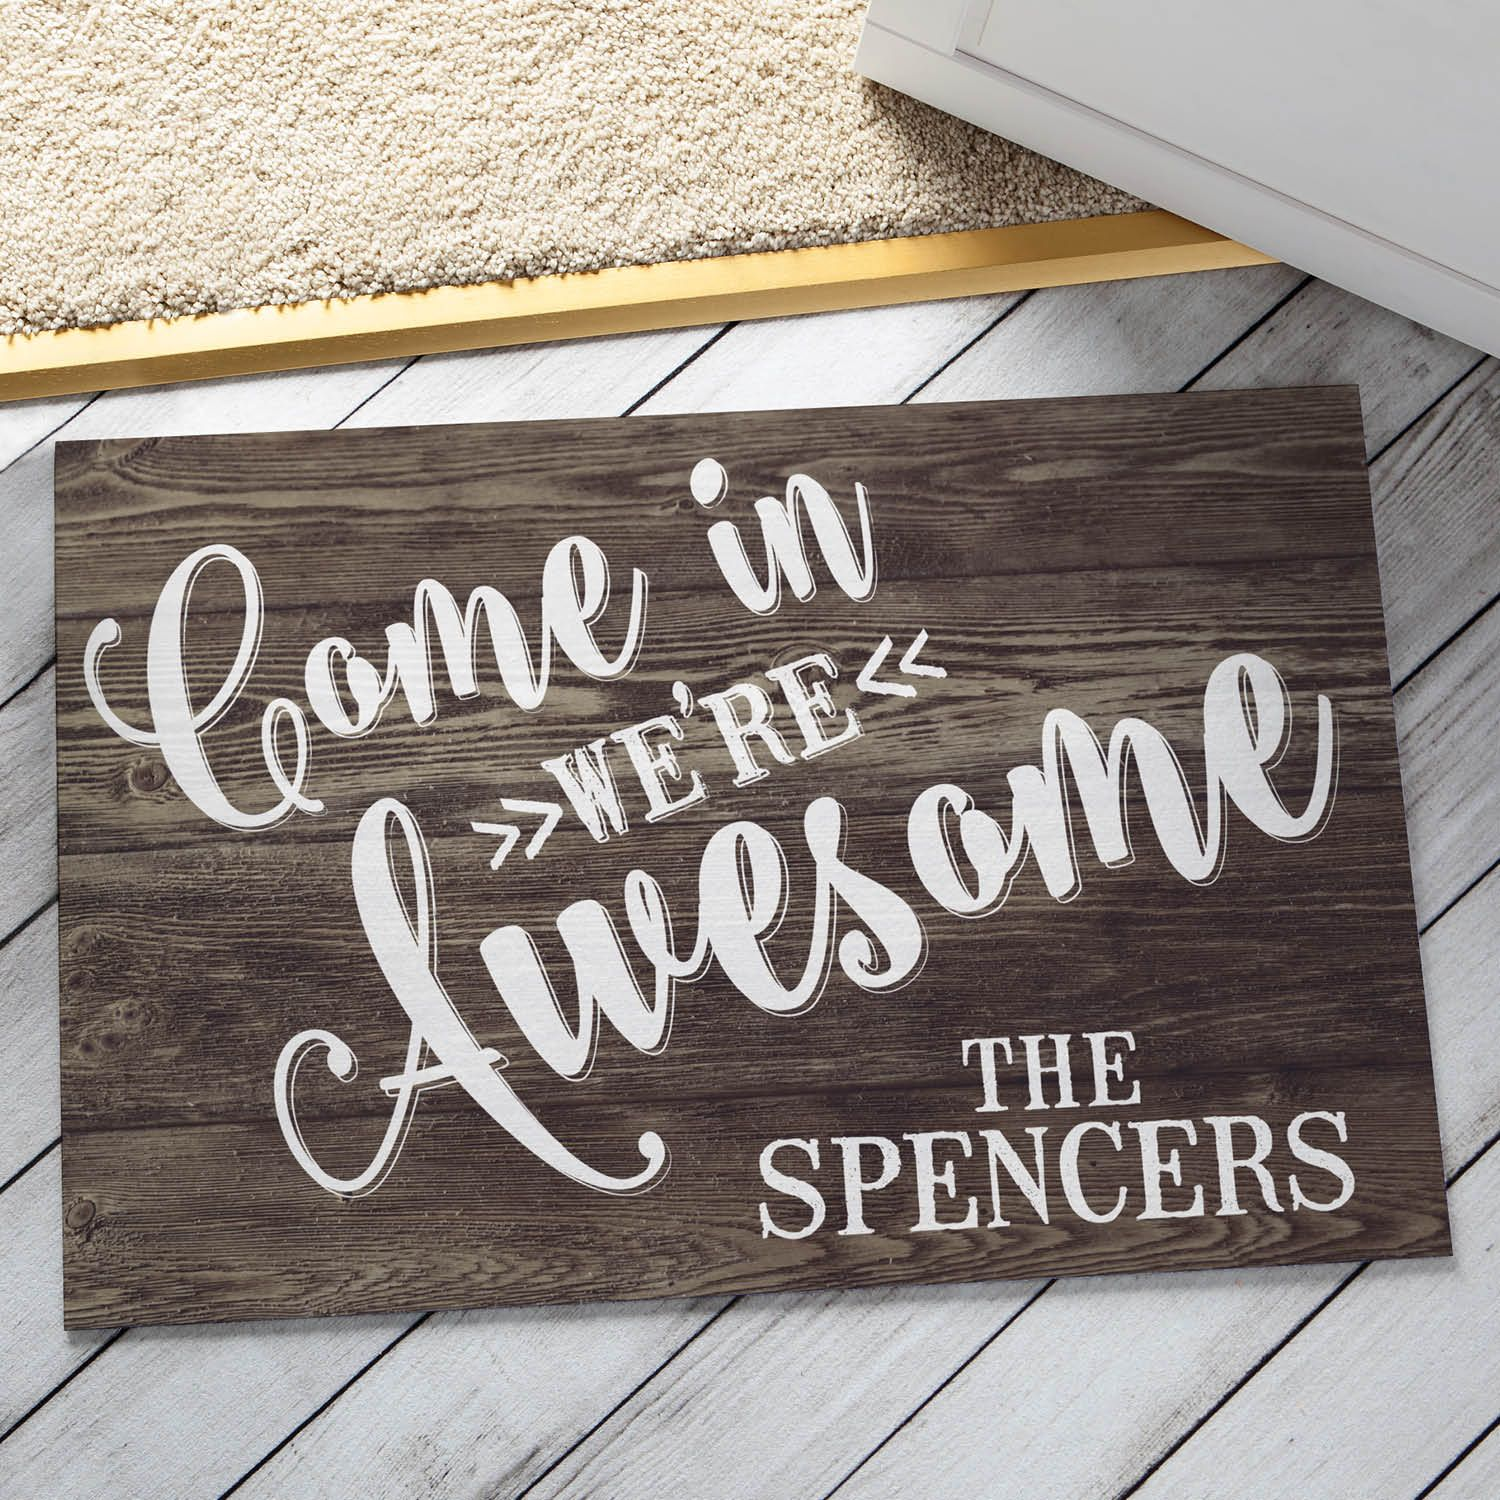 Come in were awesome personalized doormat doormats home come in were awesome personalized doormat doormats home personalized planet rubansaba